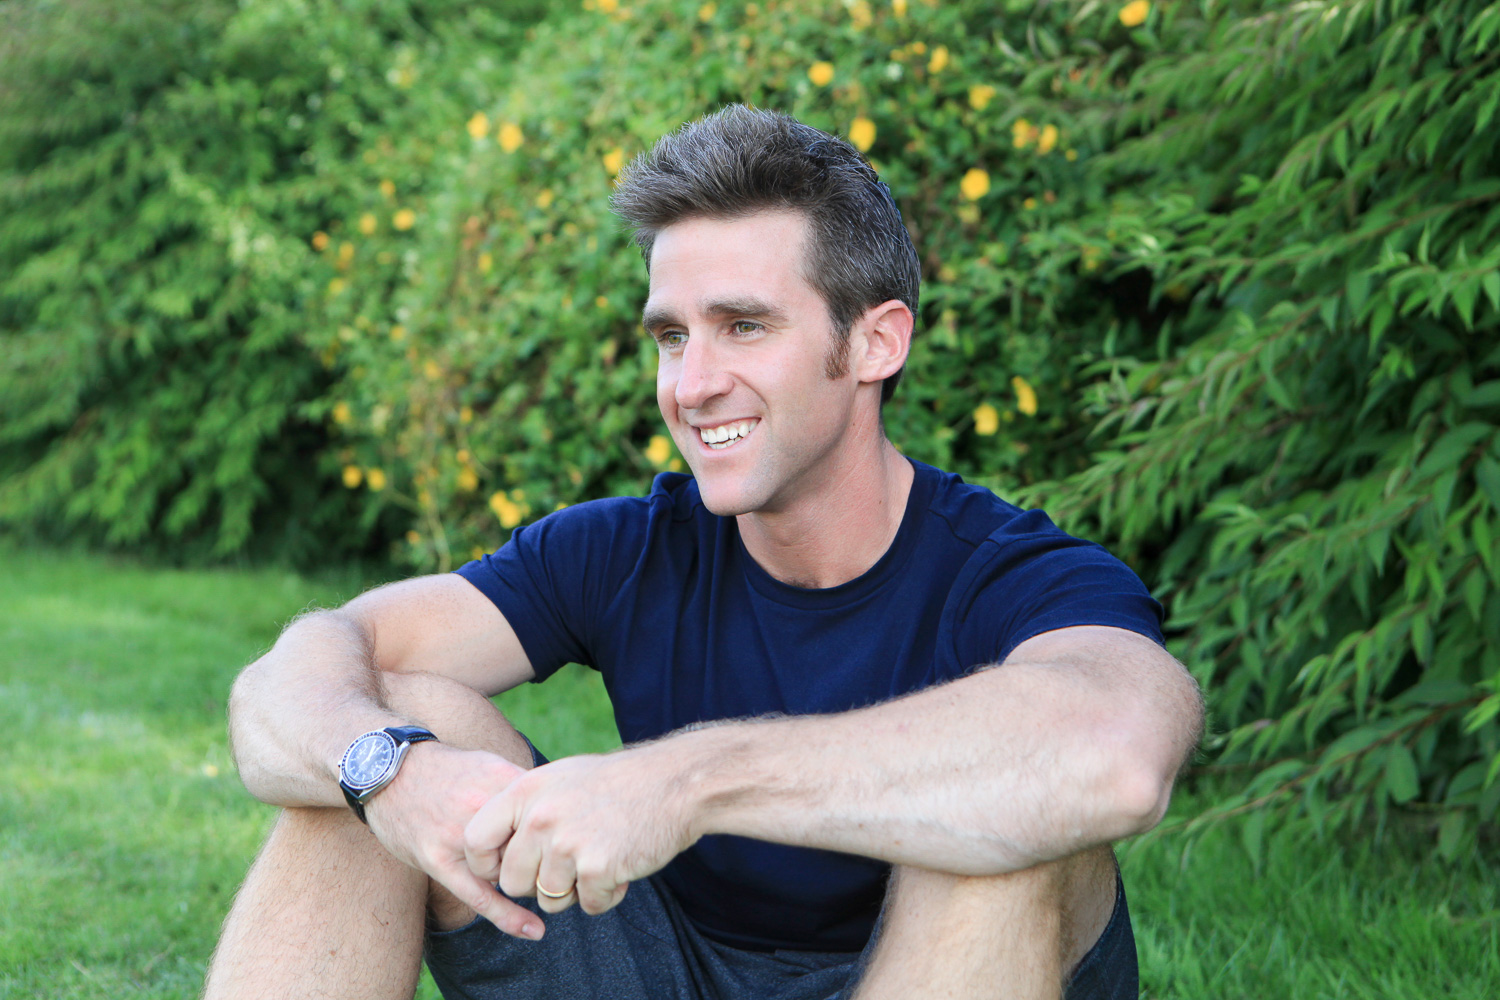 Simon-Beatson-personal-trainer-bradford-on-avon.jpg